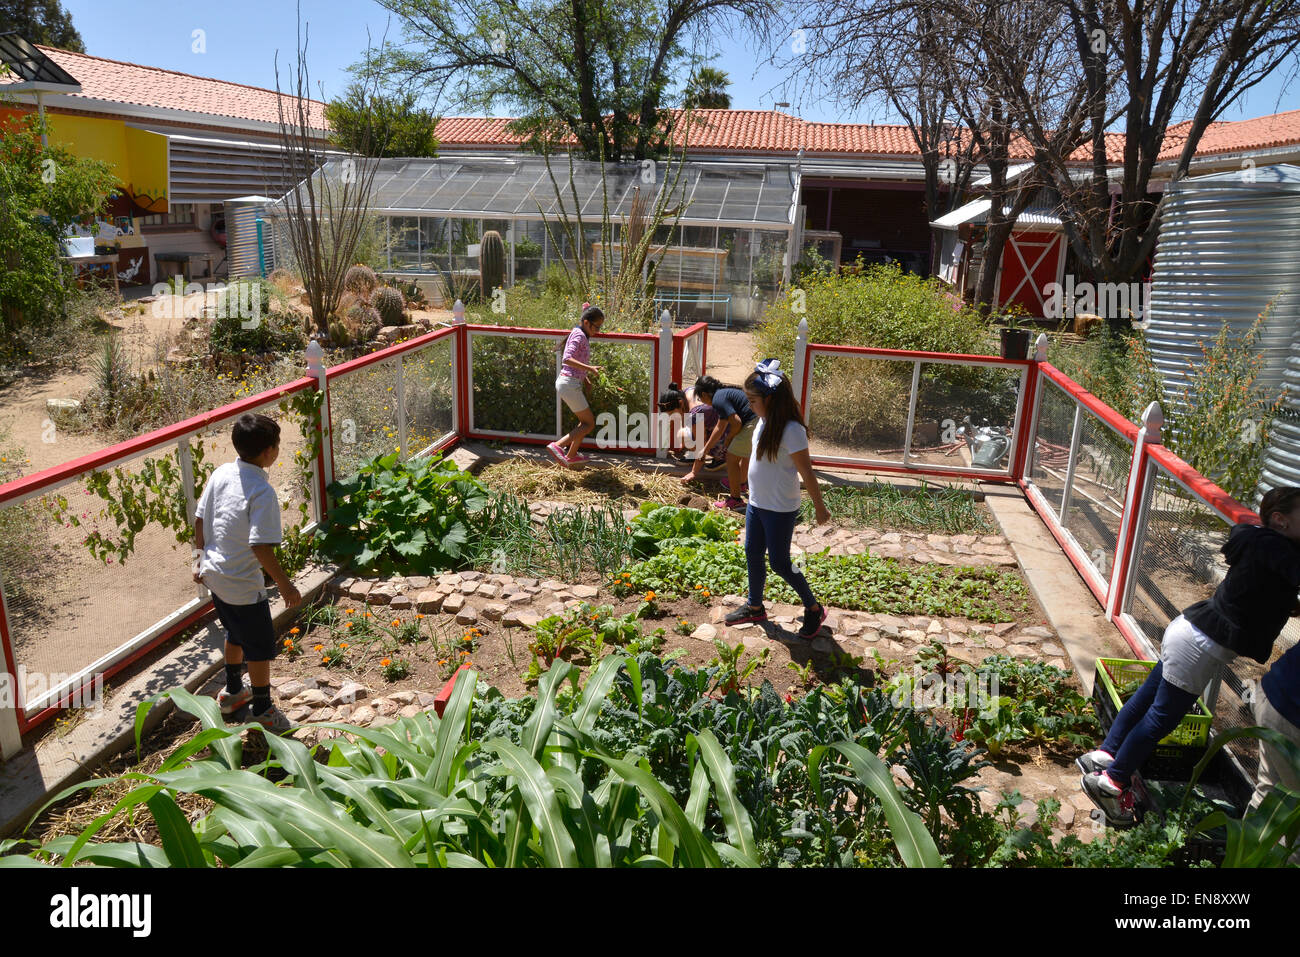 Marvelous 29 April, 2015: Students Work In The School Garden At Manzo Elementary  School, Tucson, Arizona, USA. The School Was The First In TUSD To Be  Certified For ...